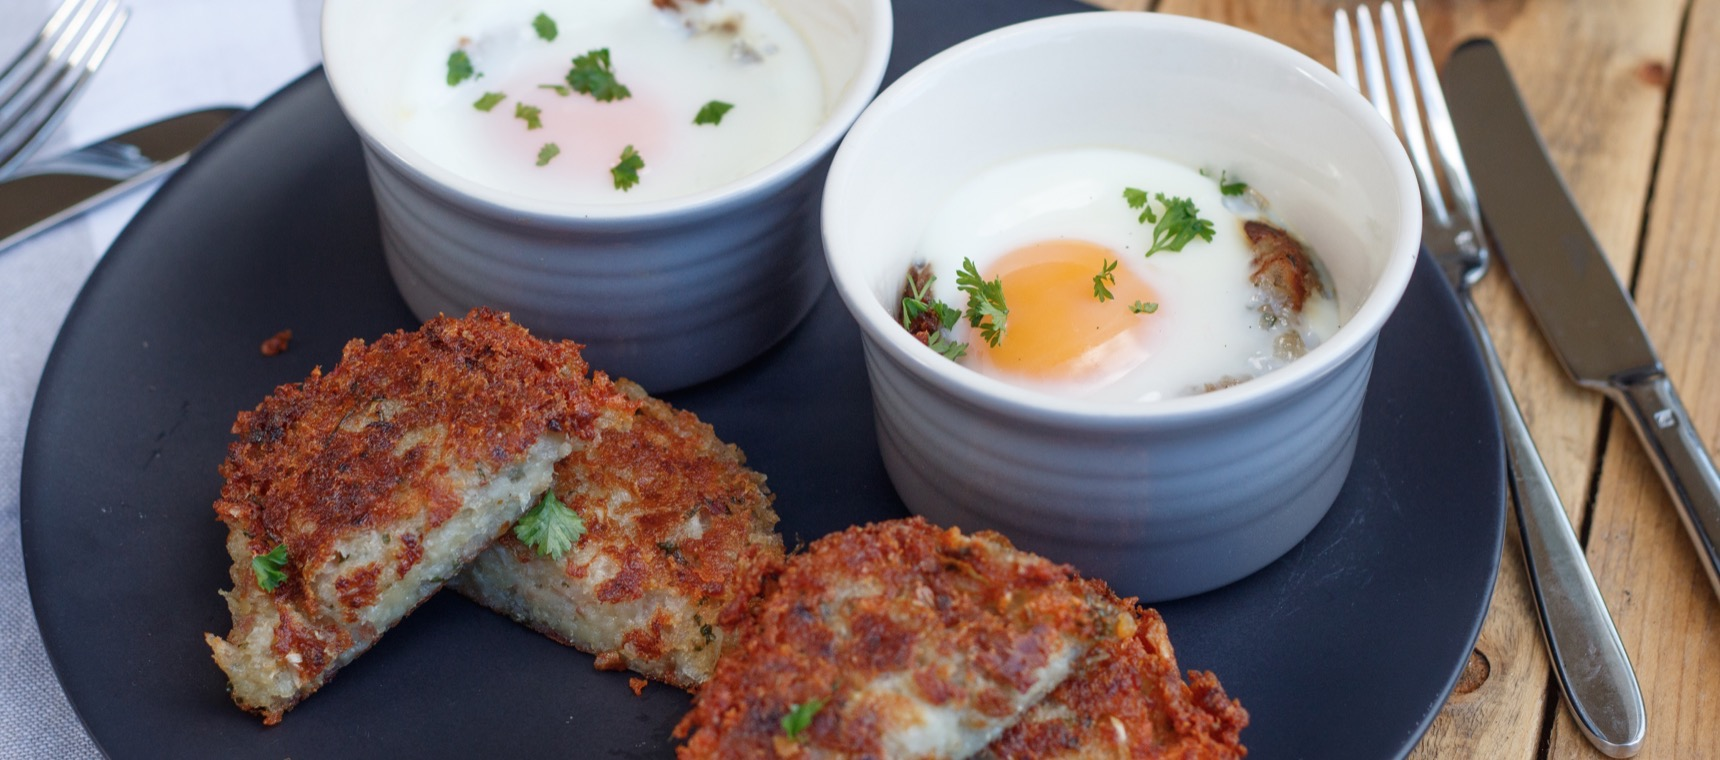 Baked Eggs and Hash Brown Bowls